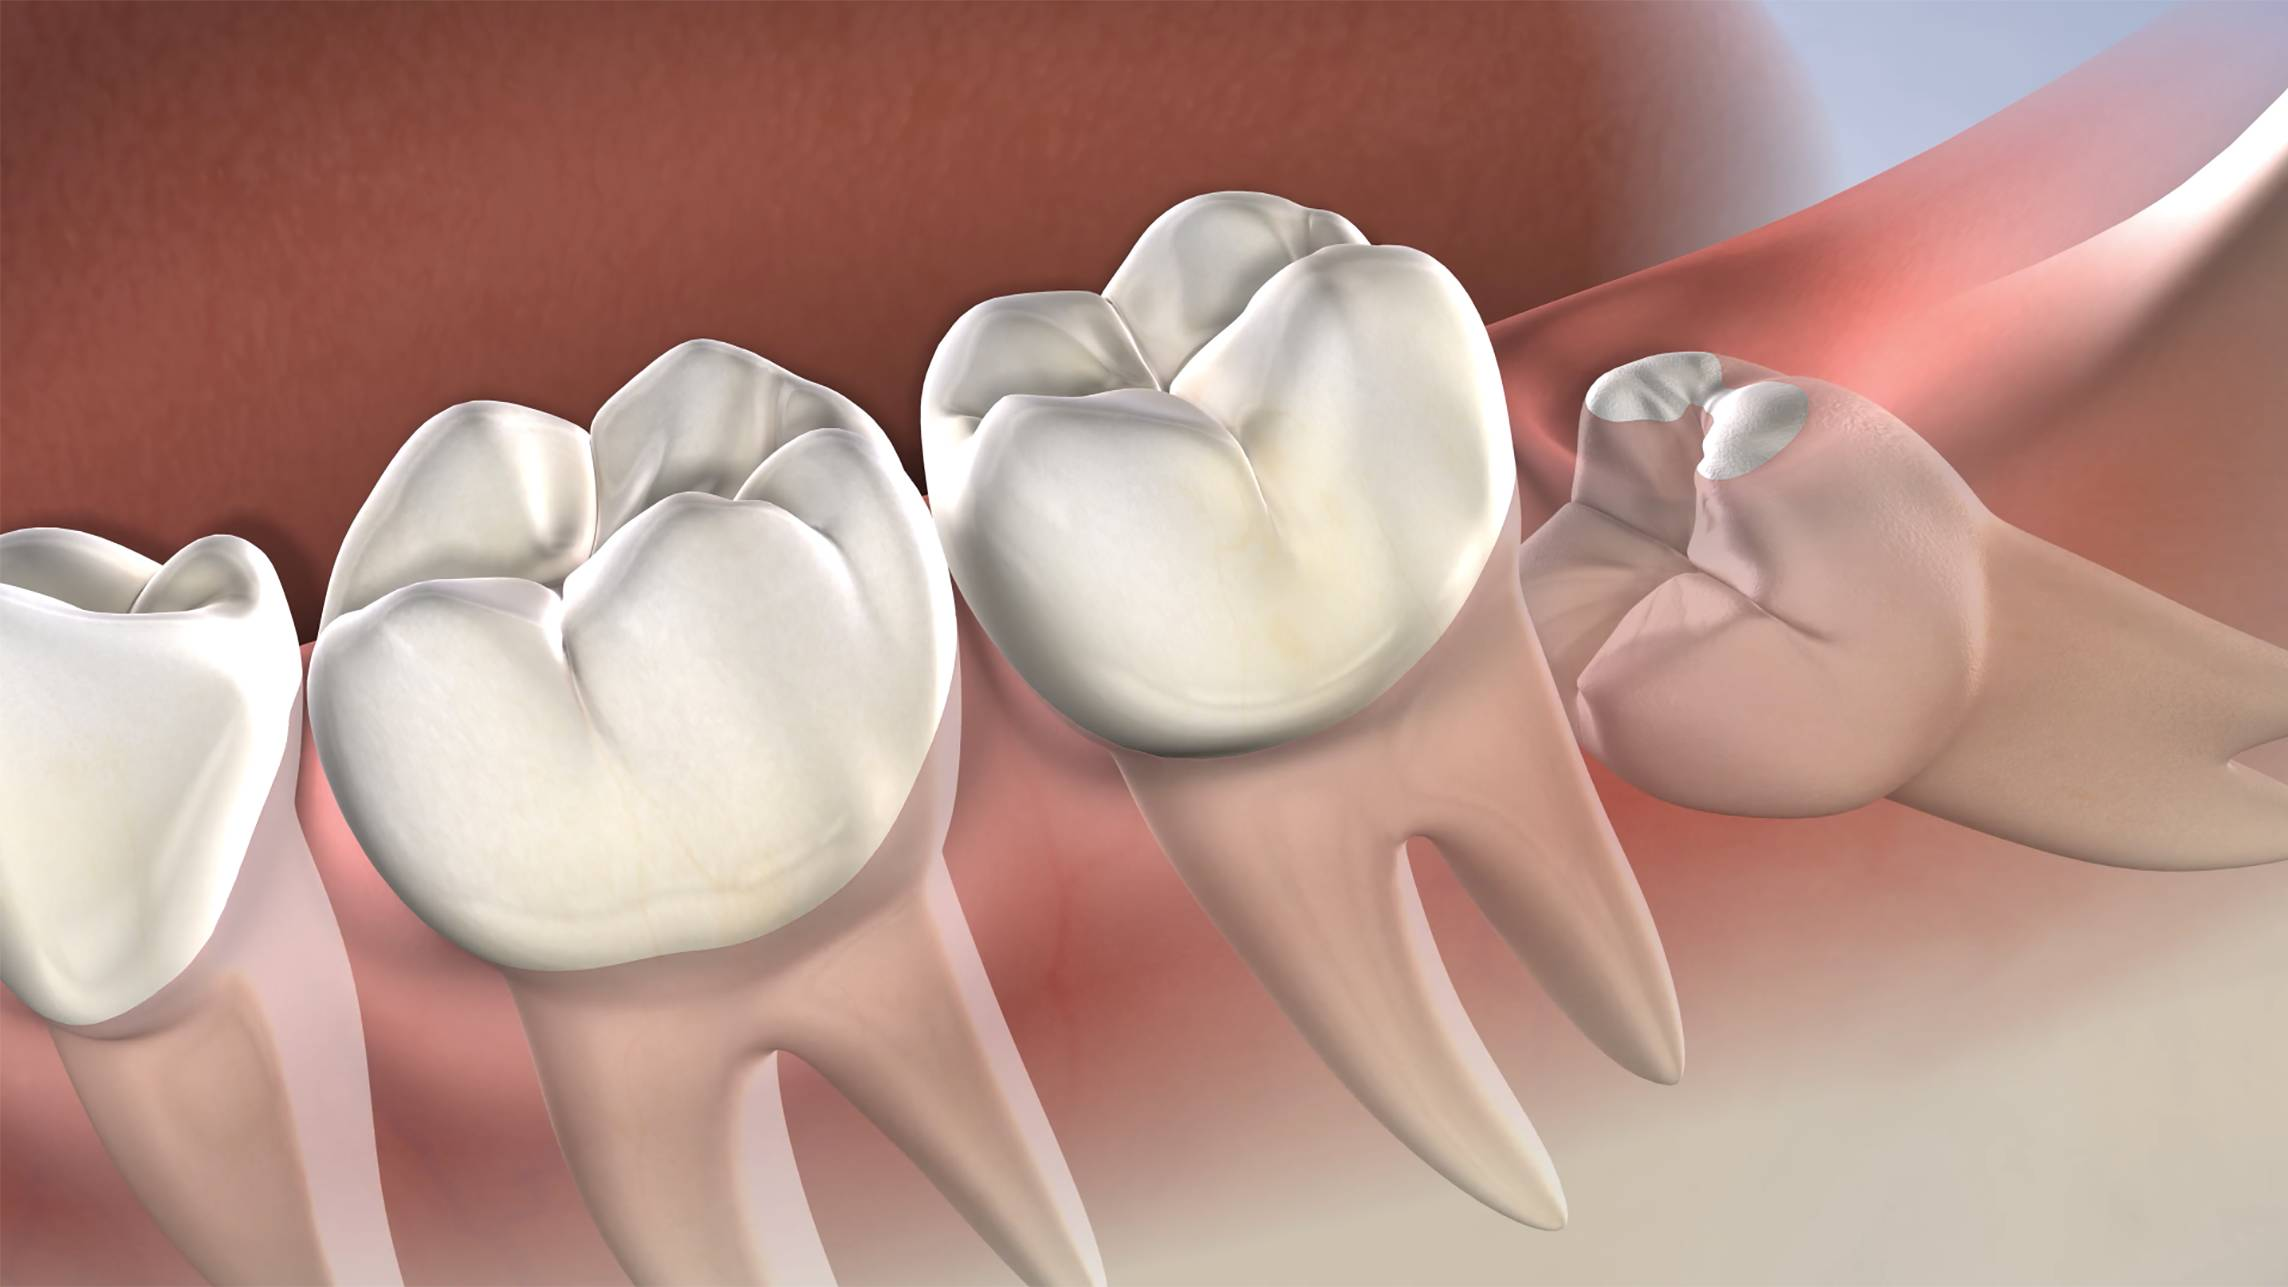 What Happens If You Don't Get Your Wisdom Tooth Out?